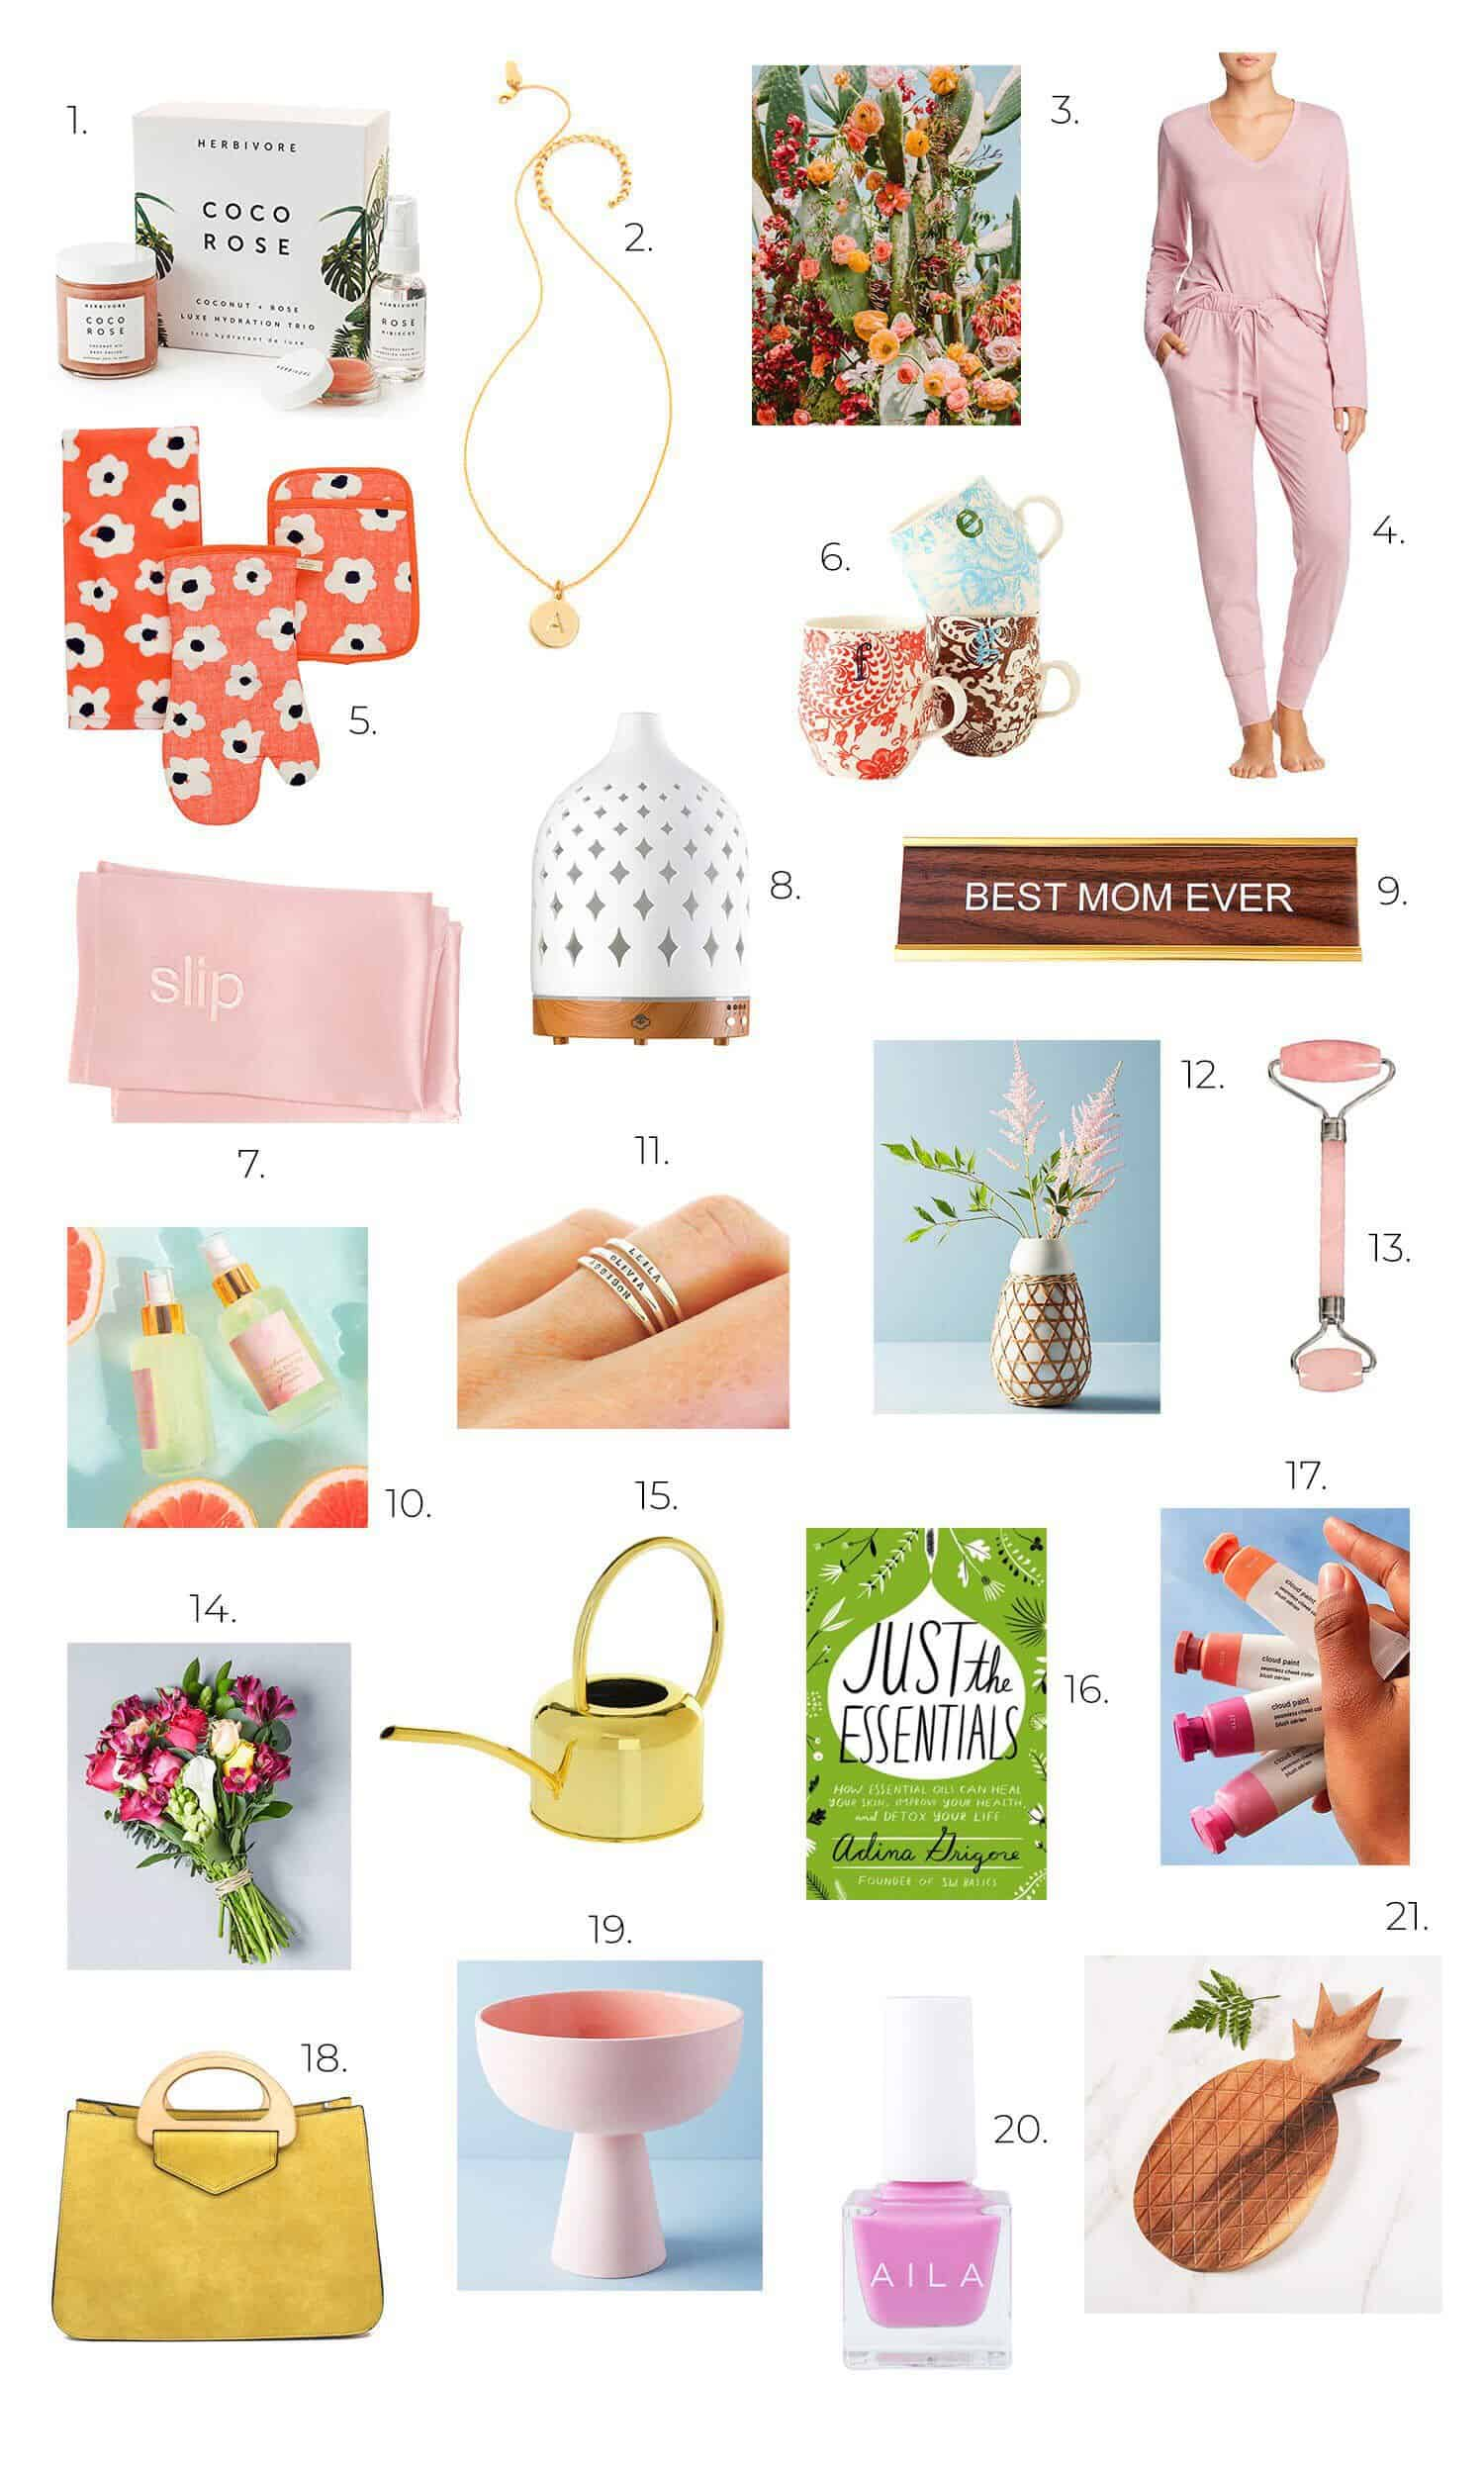 66271006e571 Here's a little gift guide for all the cool moms out there. 😉